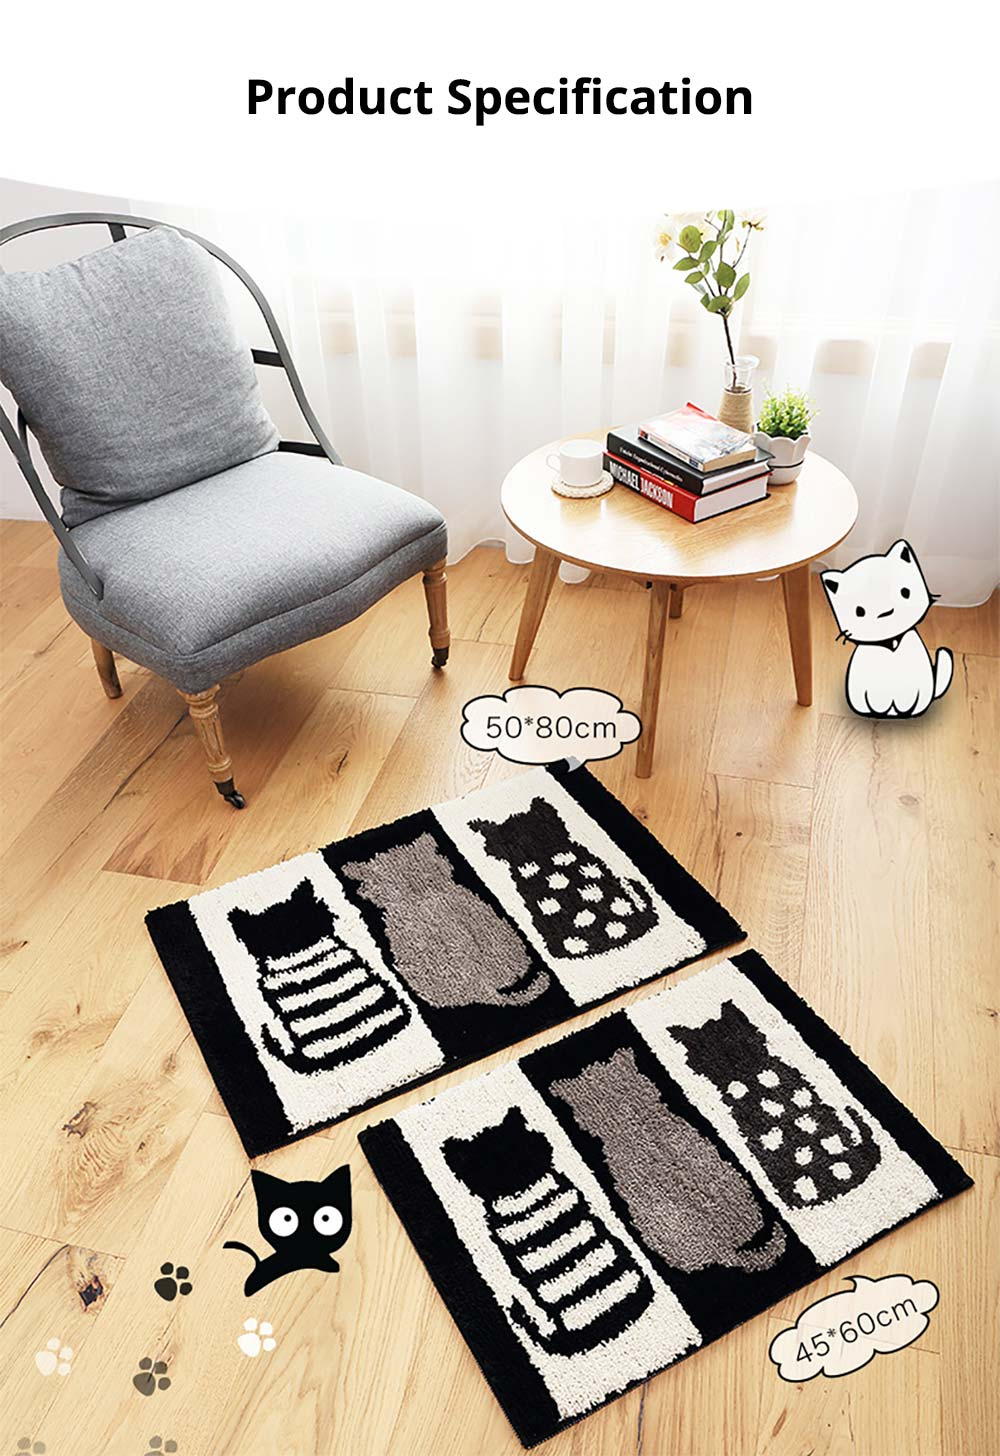 Chic Contrast Color Black And White Carpet Doormat Area Rug Fluffy Shaggy Anti-Skid Floor Mats 9